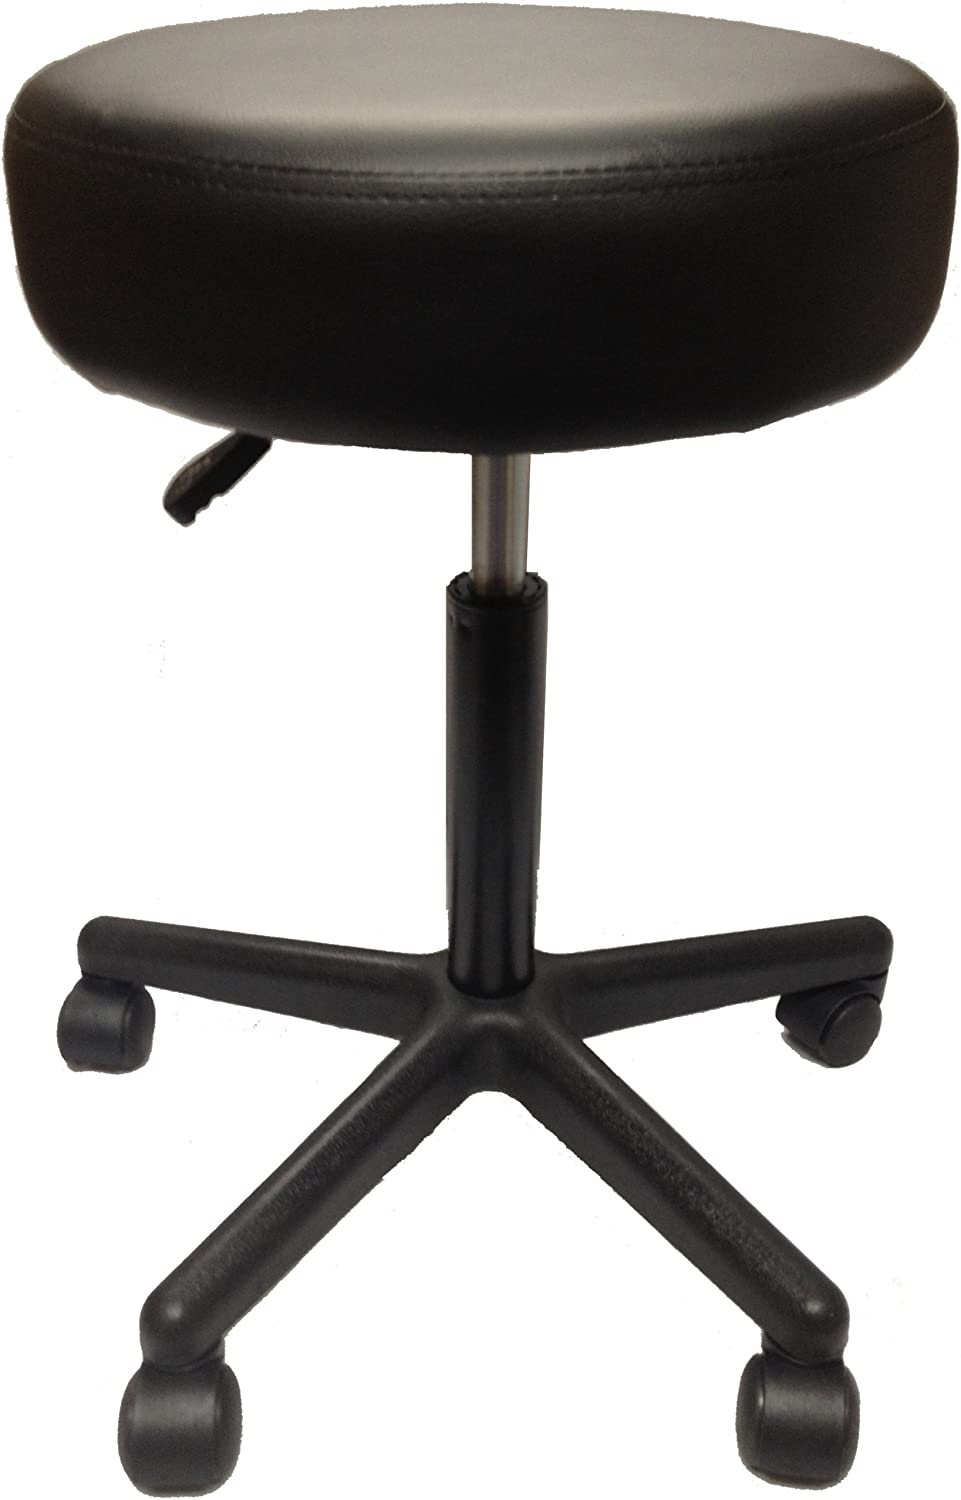 Clinical Health Services Adjustable Pneumatic Stool (Black) for Massage Tables, Examination Tables, Physician's Office by Therabuilt (Black)